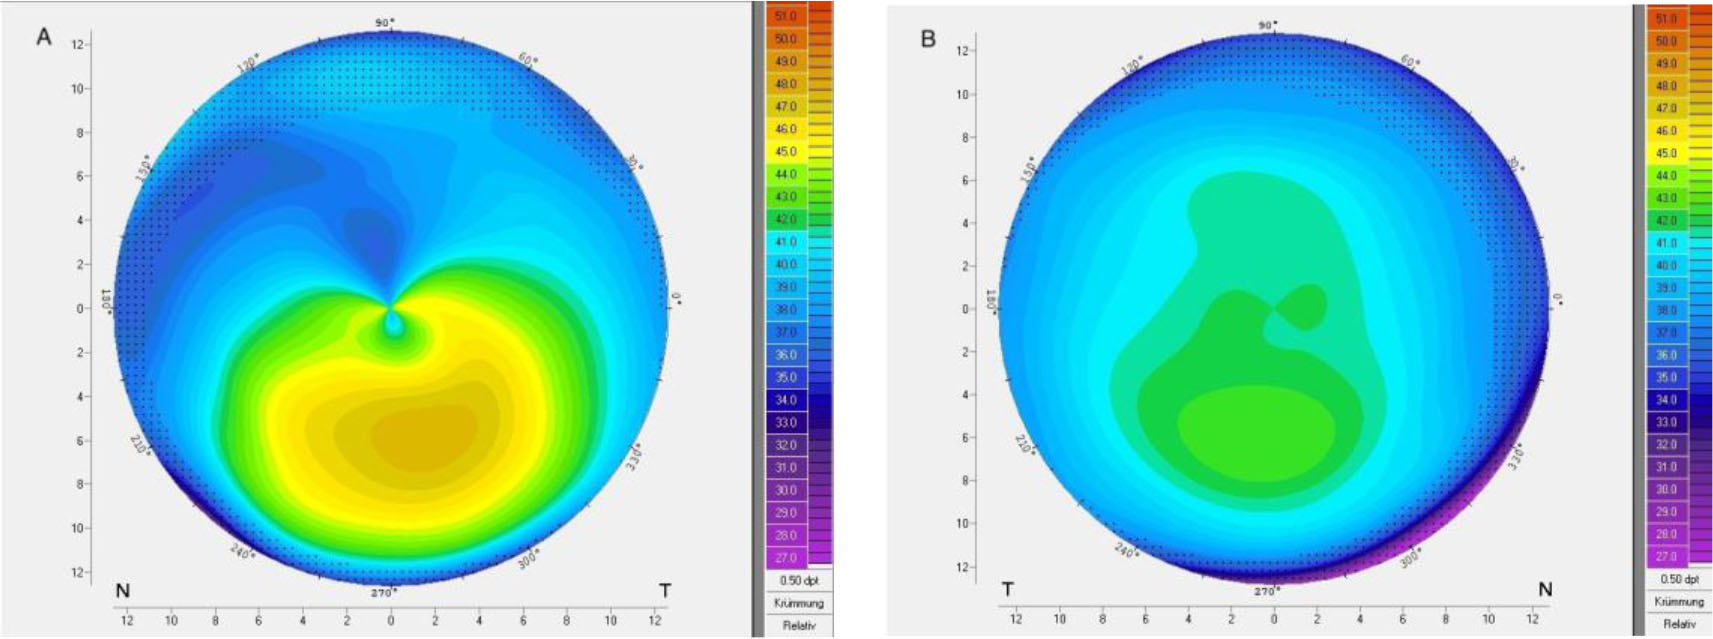 Corneal topography of patient 29 with very asymmetric keratoconus showing (A) ectasia and (B) regular topography in the fellow eye.